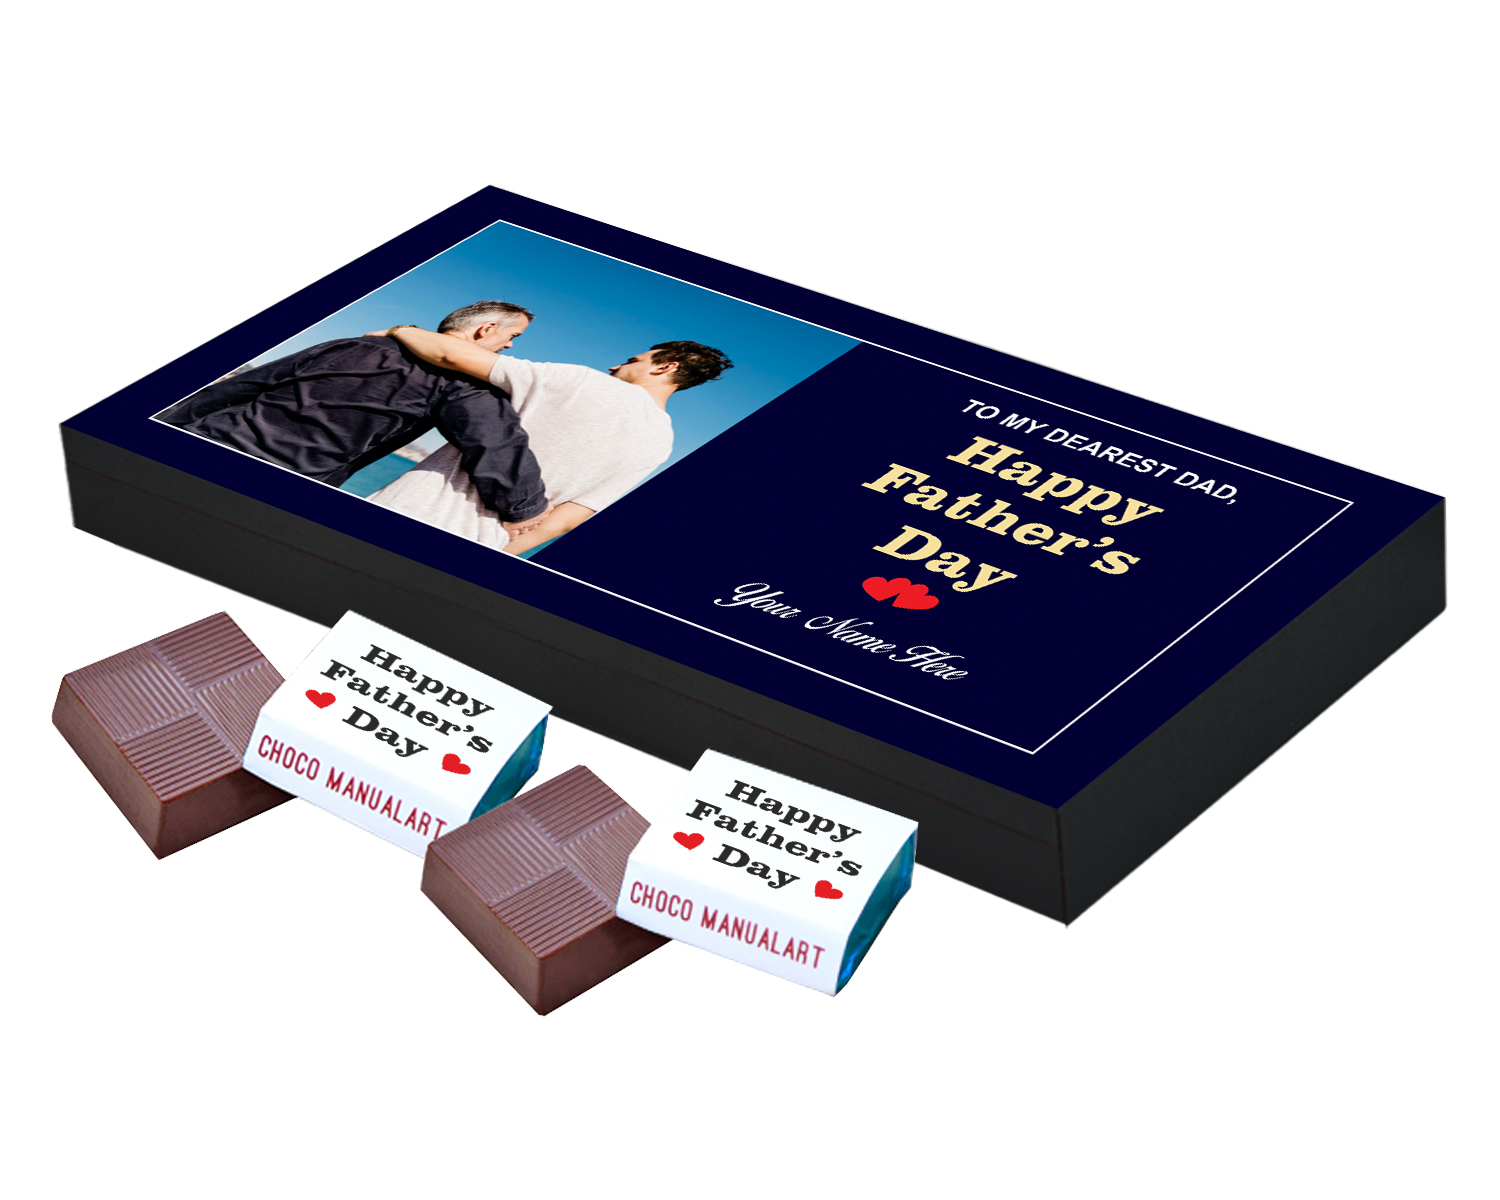 Personalized Fathers Day Chocolates Box with Photograph Name and Message 18 Pcs  Best Customized Happy Fathers Day Chocolates Box